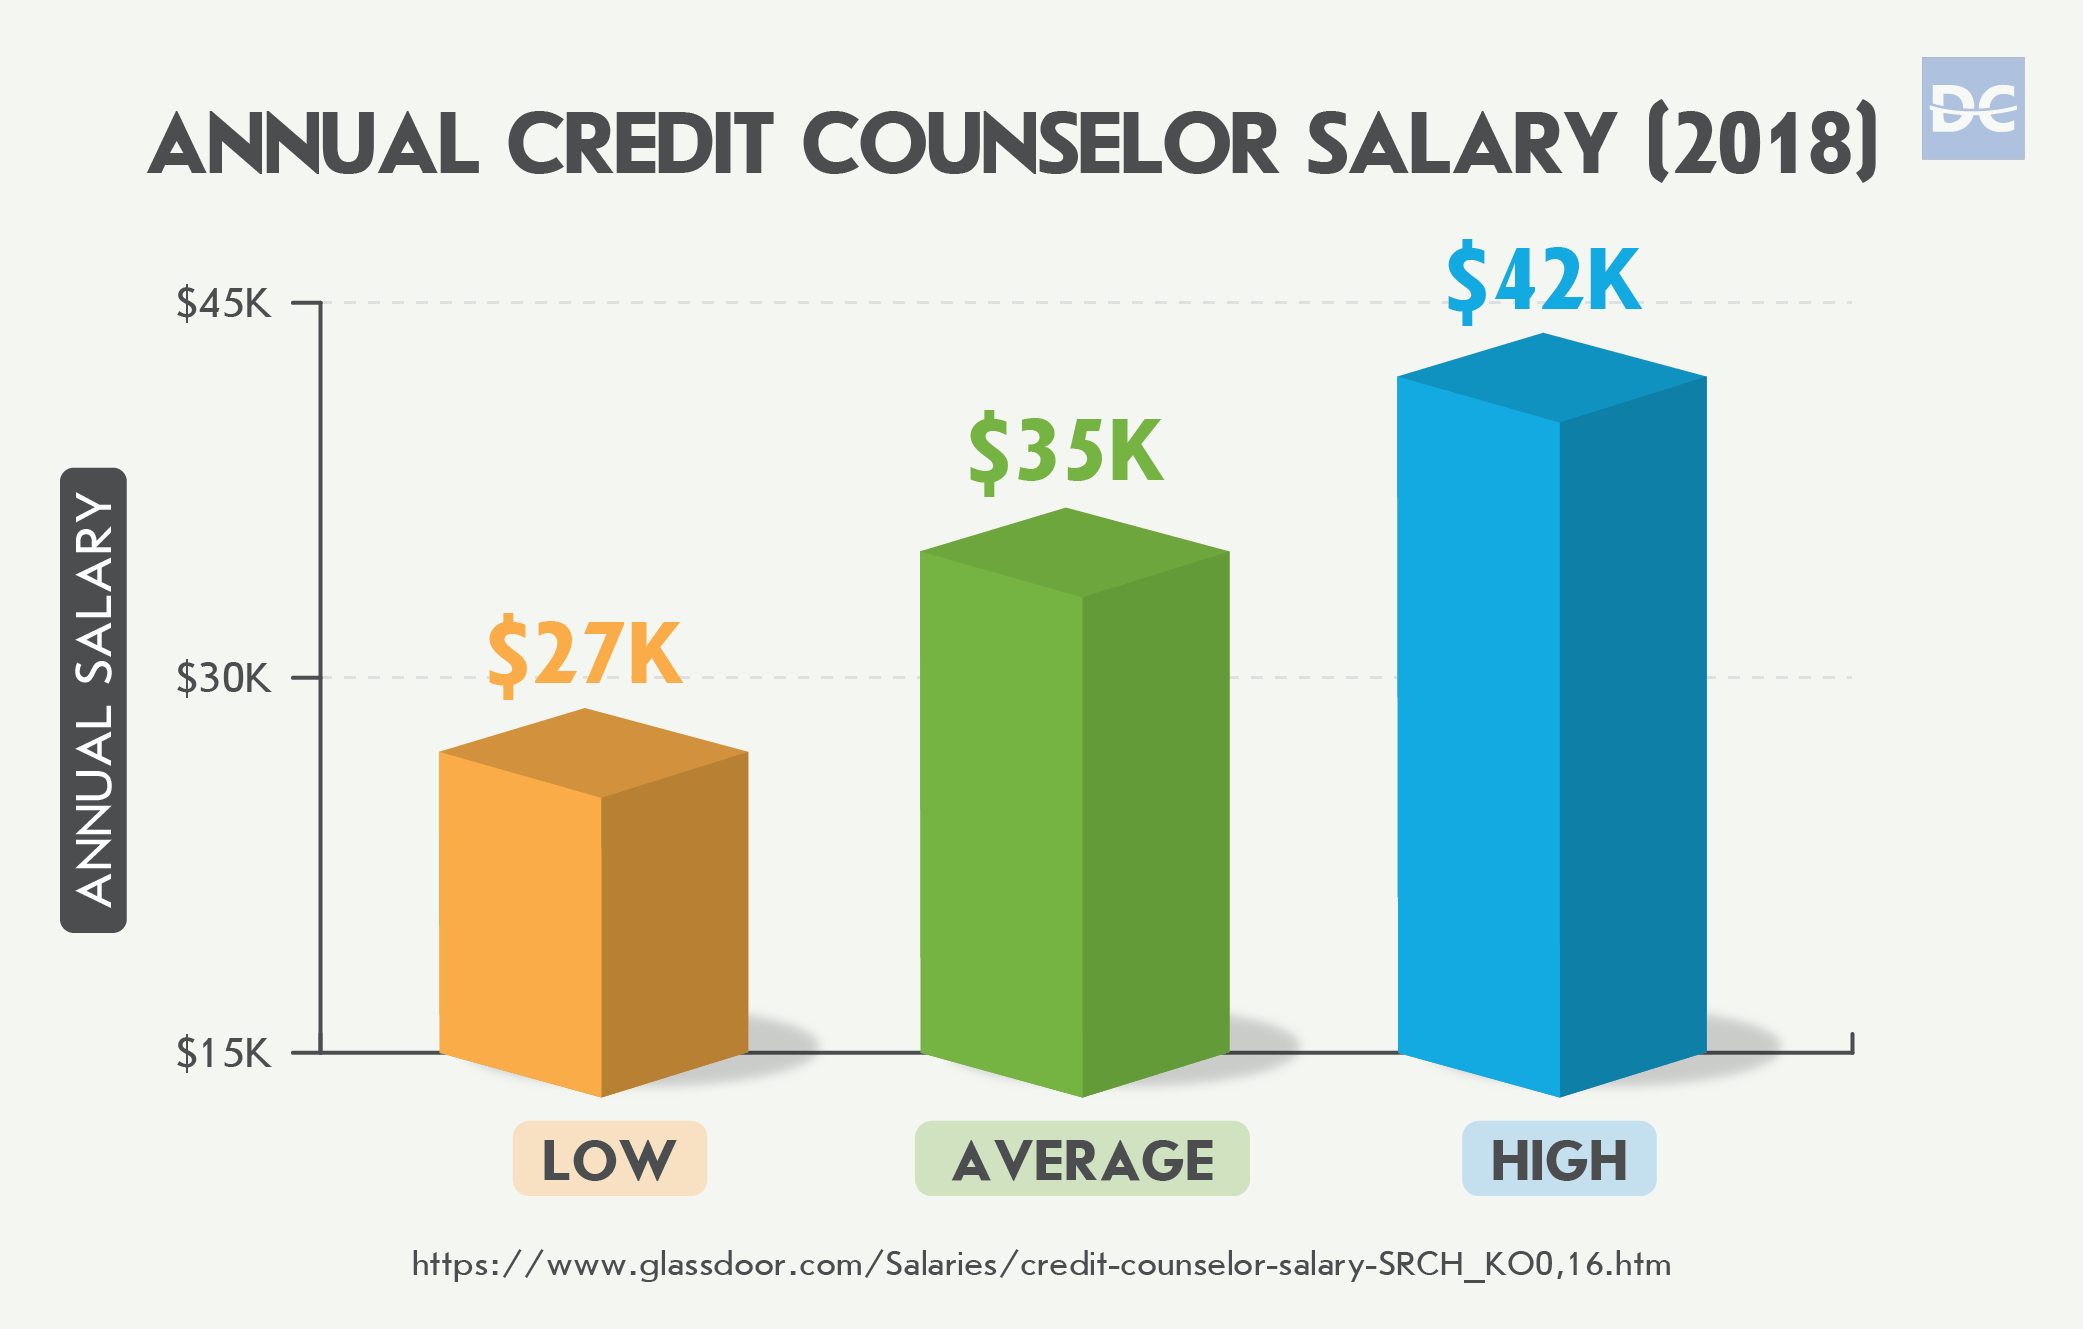 Annual Credit Counselor Salary in 2018